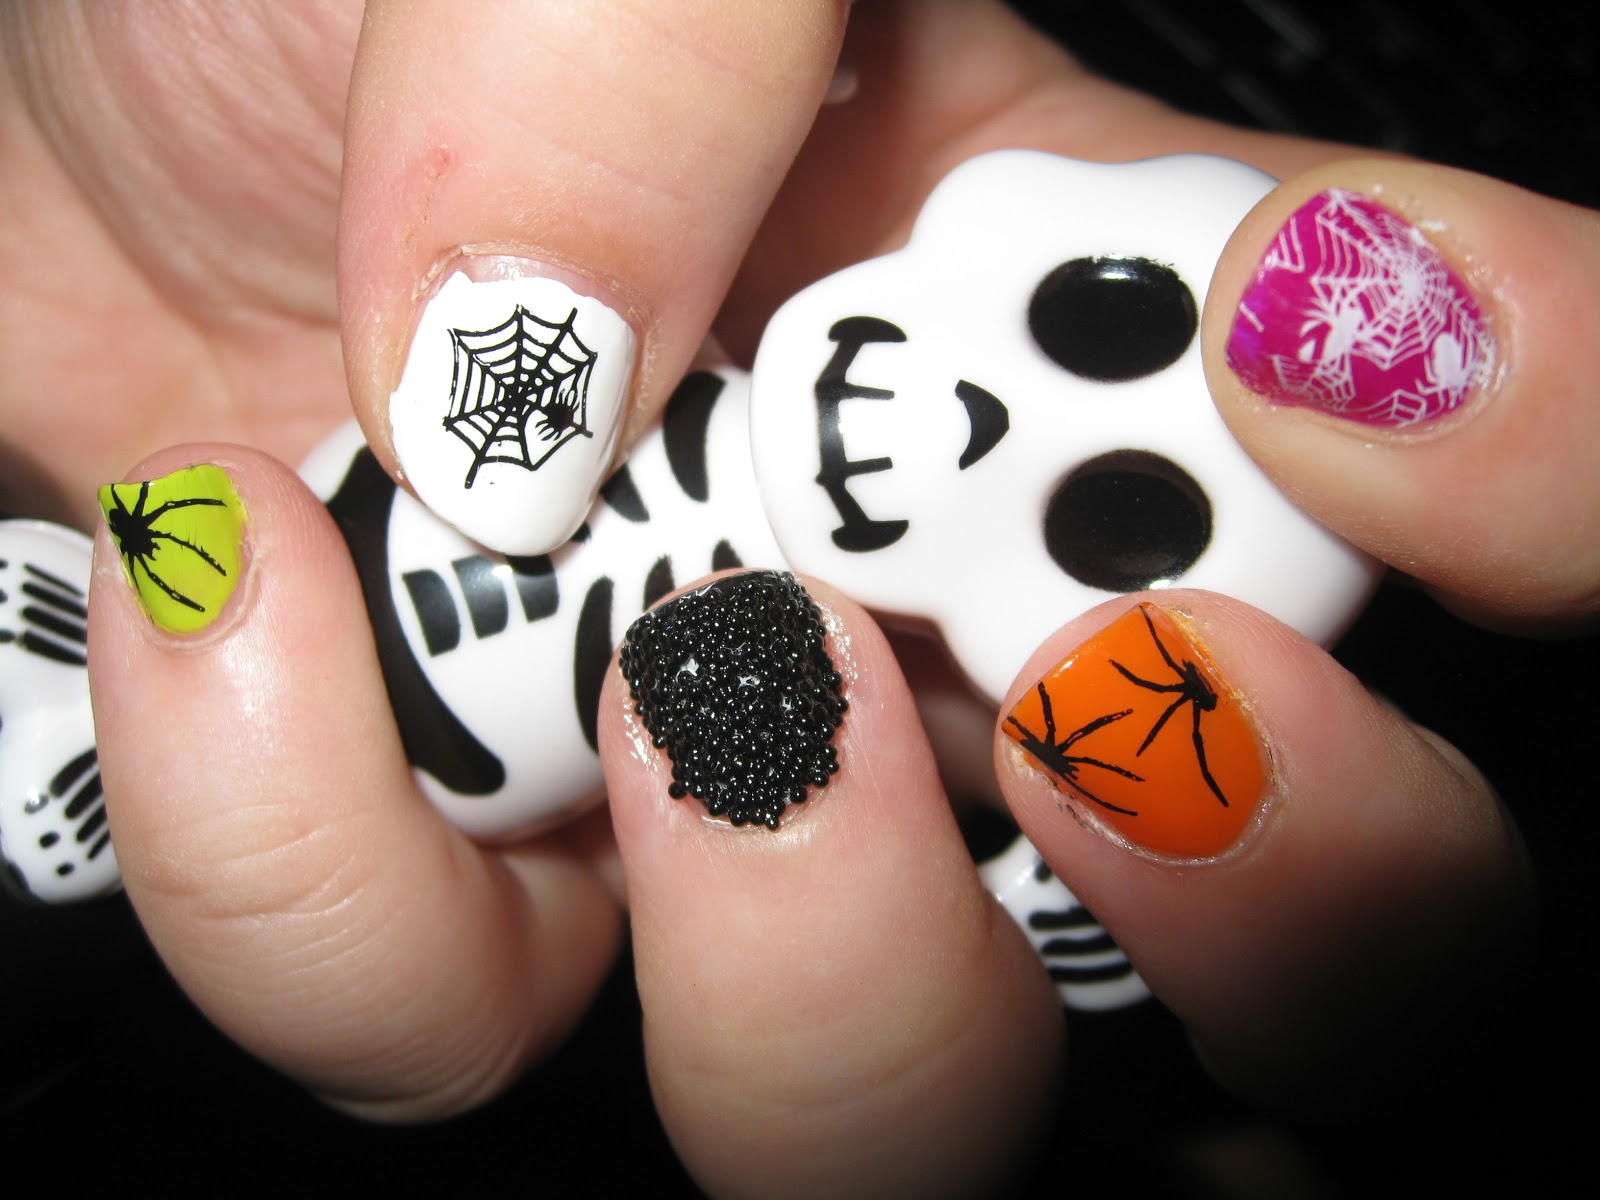 Nail Designs besides Unique Nail Art Designs besides Halloween Nail ...